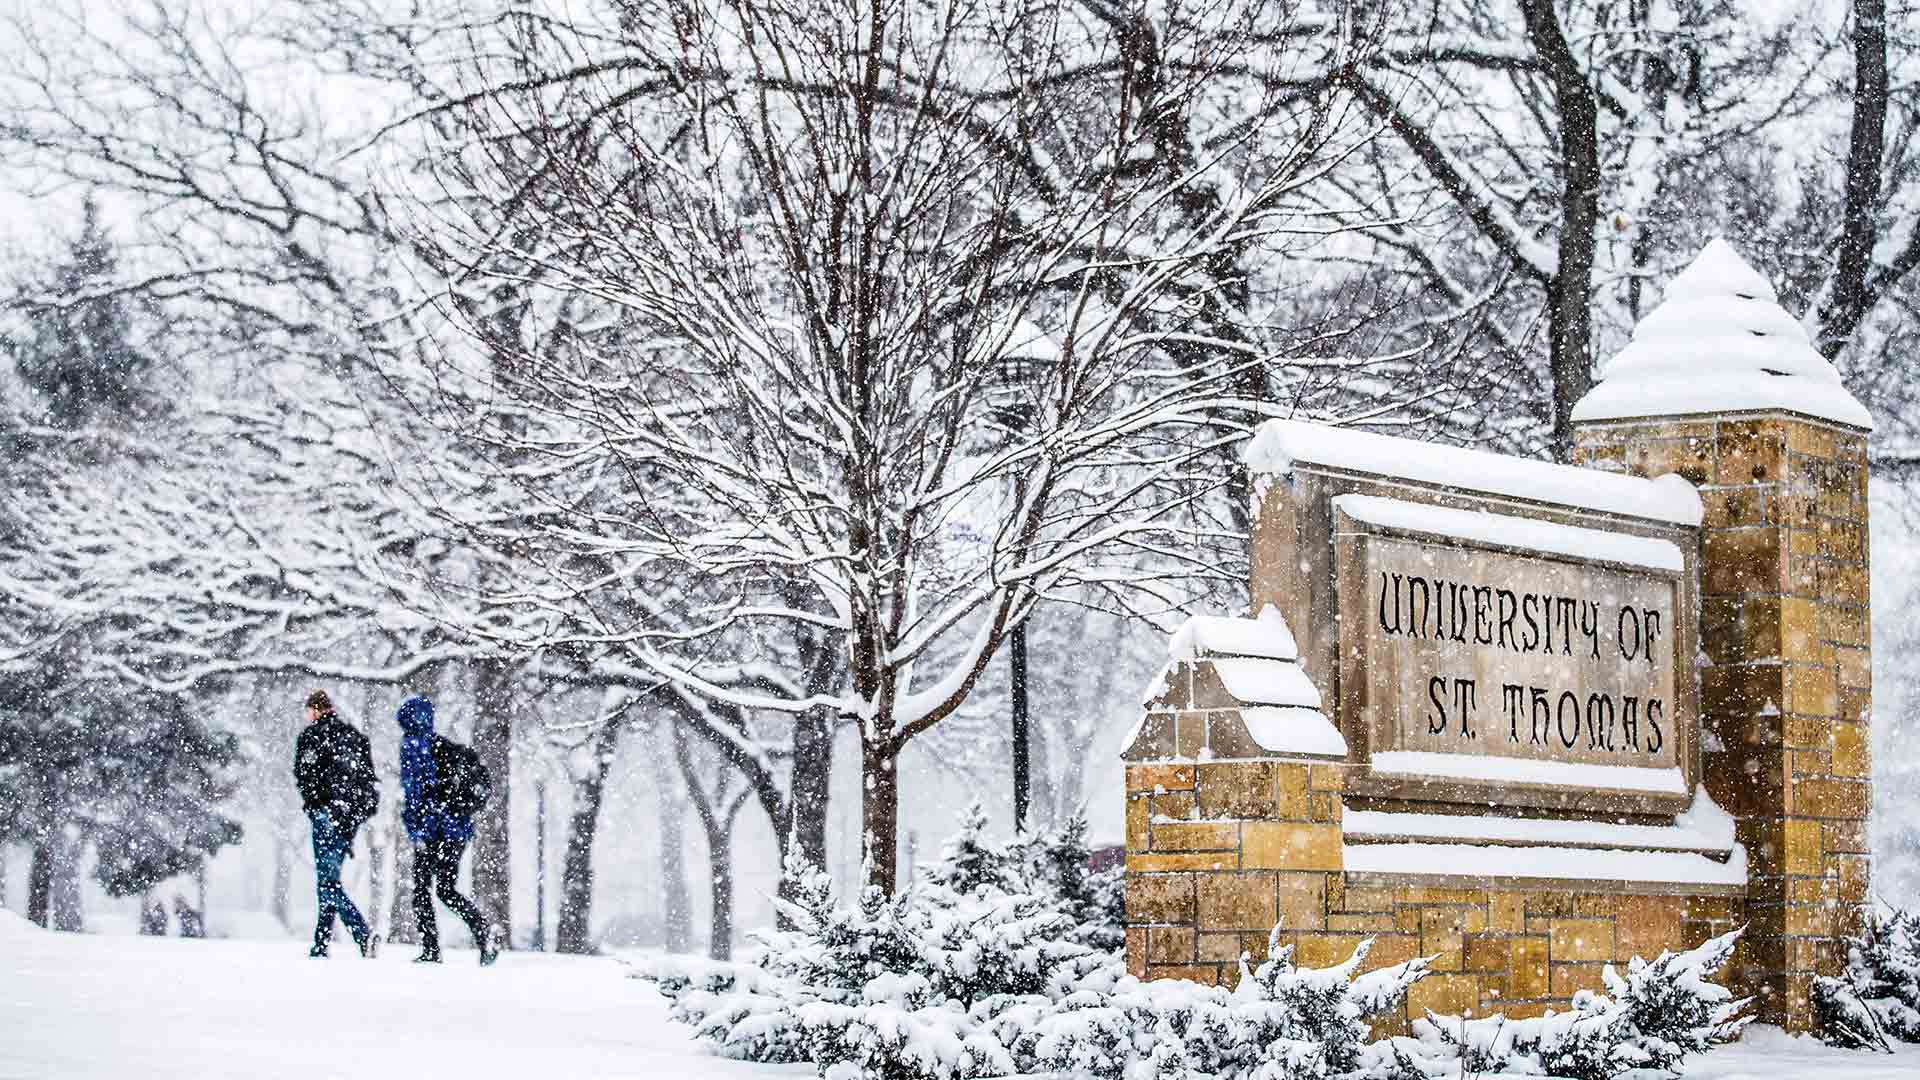 Stone University of St. Thomas sign covered in falling snow.